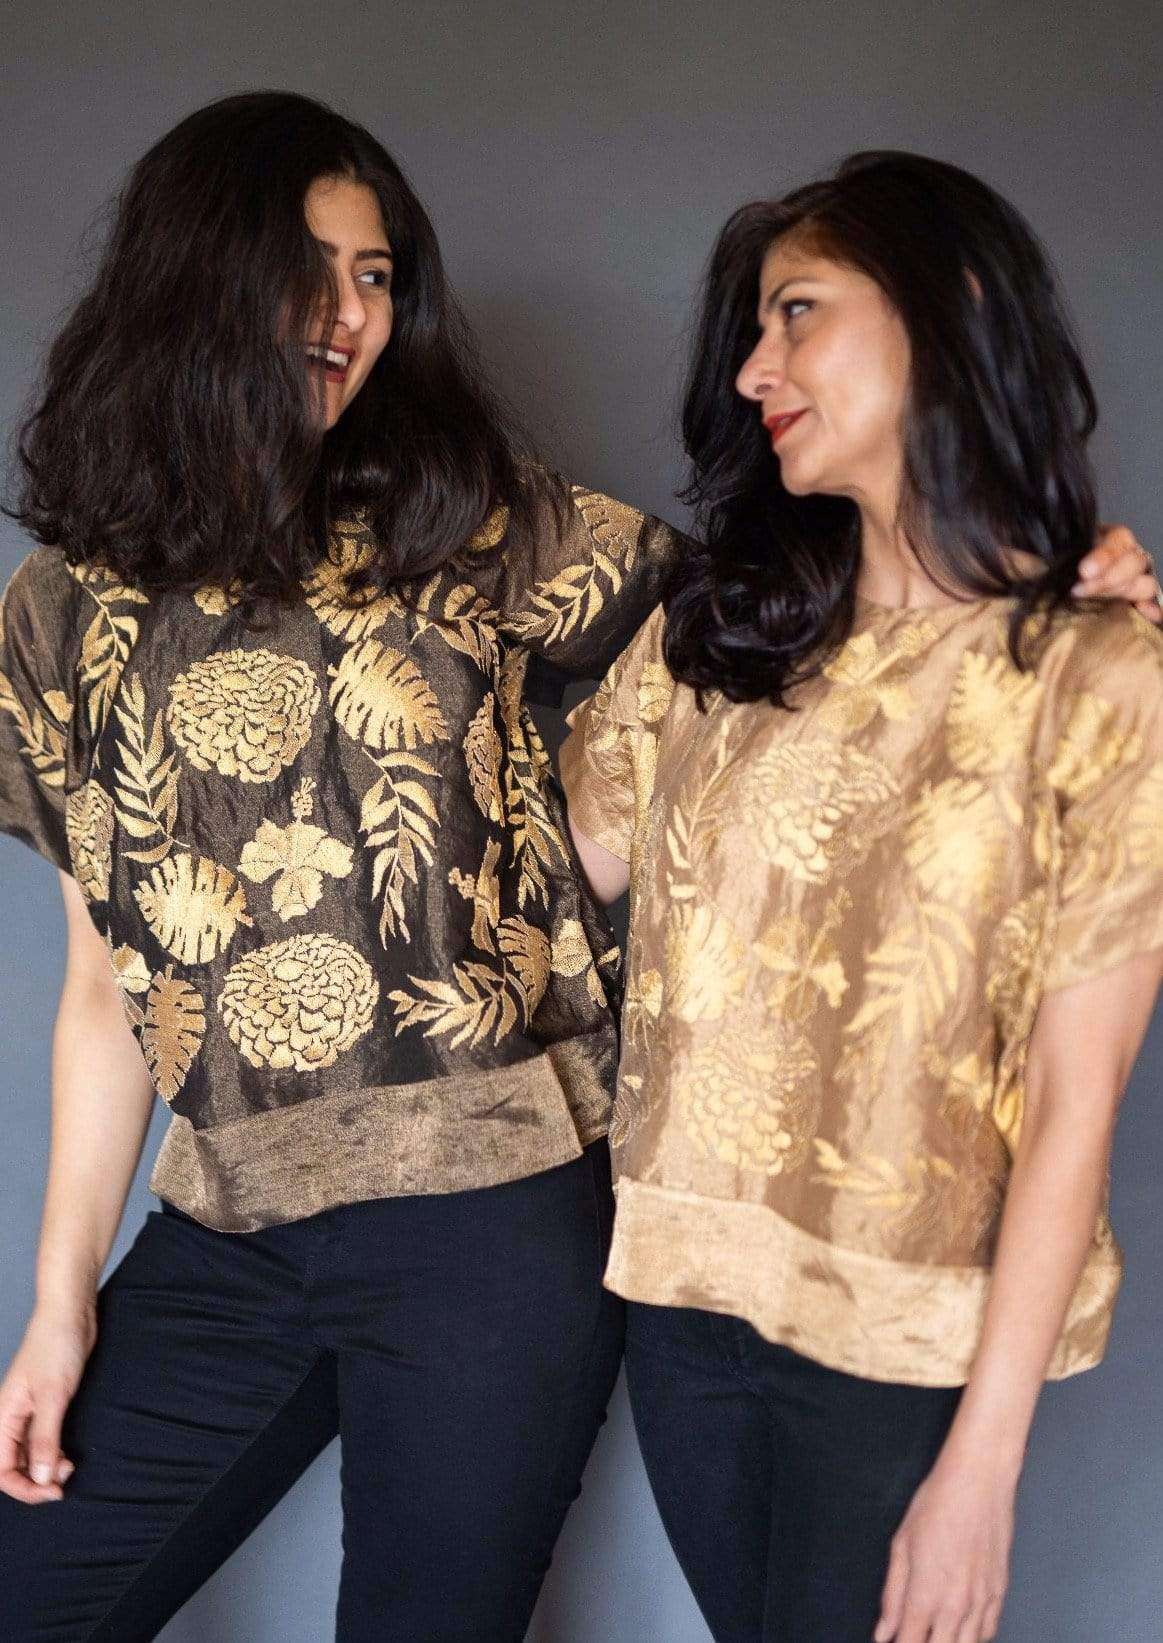 Taika by Poonam Bhagat Shirts & Tops Chanderi top with gold blossom embroidery